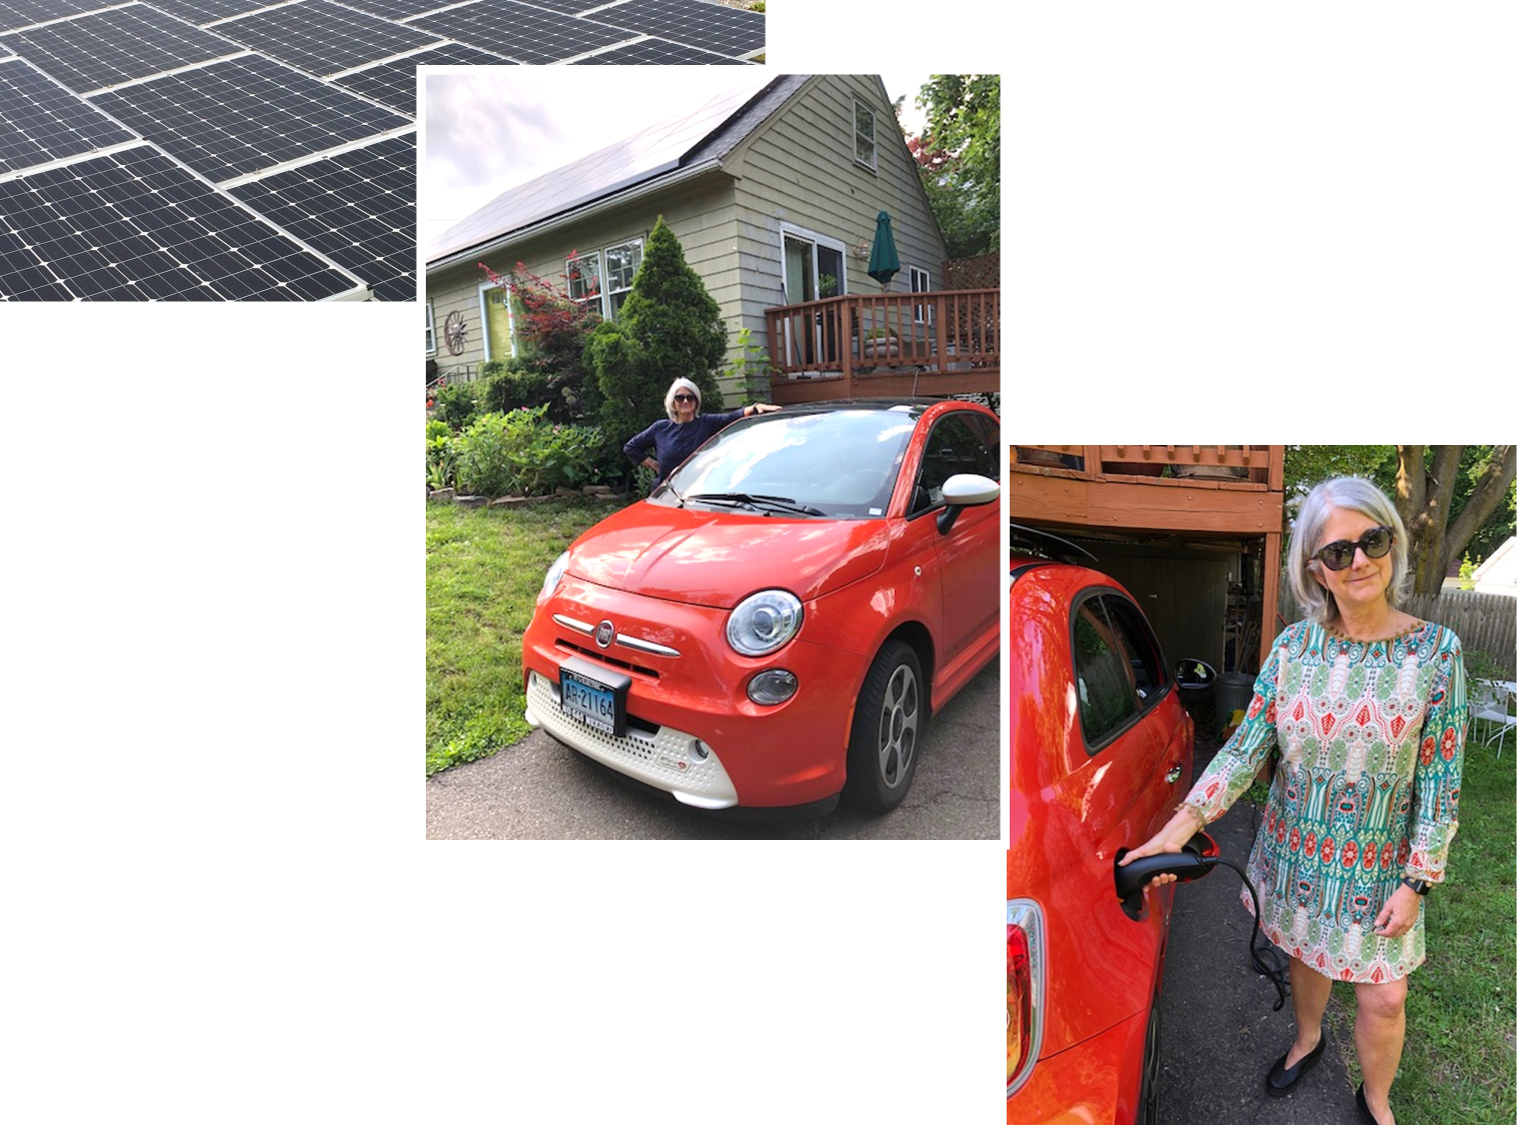 """Figure 1. Photovoltaic panels on roof are used to charge """"Plug-in Battery Electric Vehicle"""" and provide other energy needs for the house. (Photos courtesy of Elisabeth Kennedy and Emma Kennedy.)"""